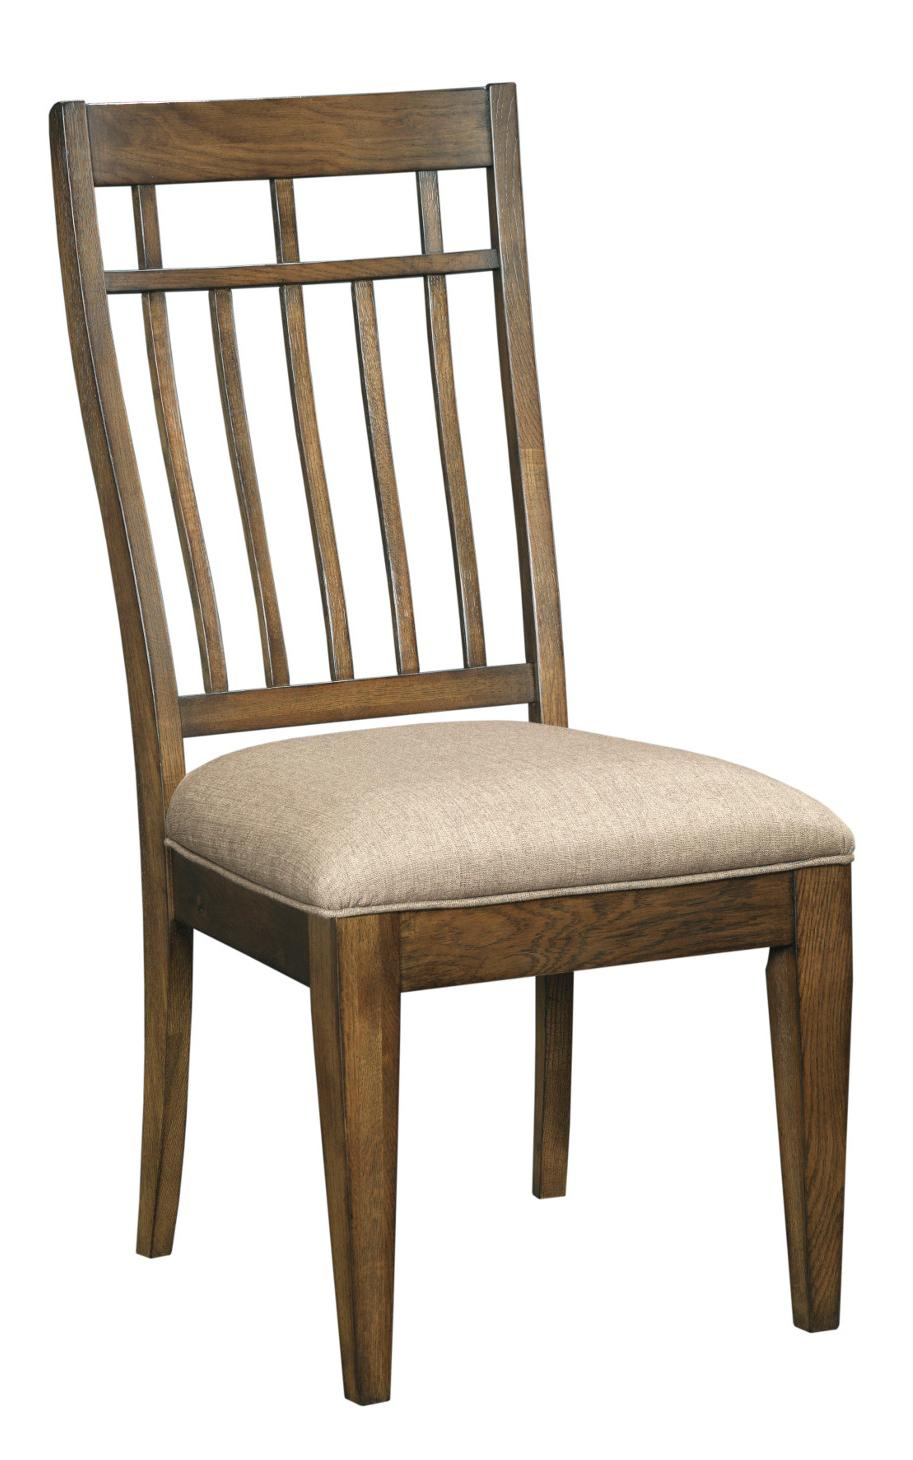 Kincaid Furniture Bedford Park Surrey Side Chair - Item Number: 74-061